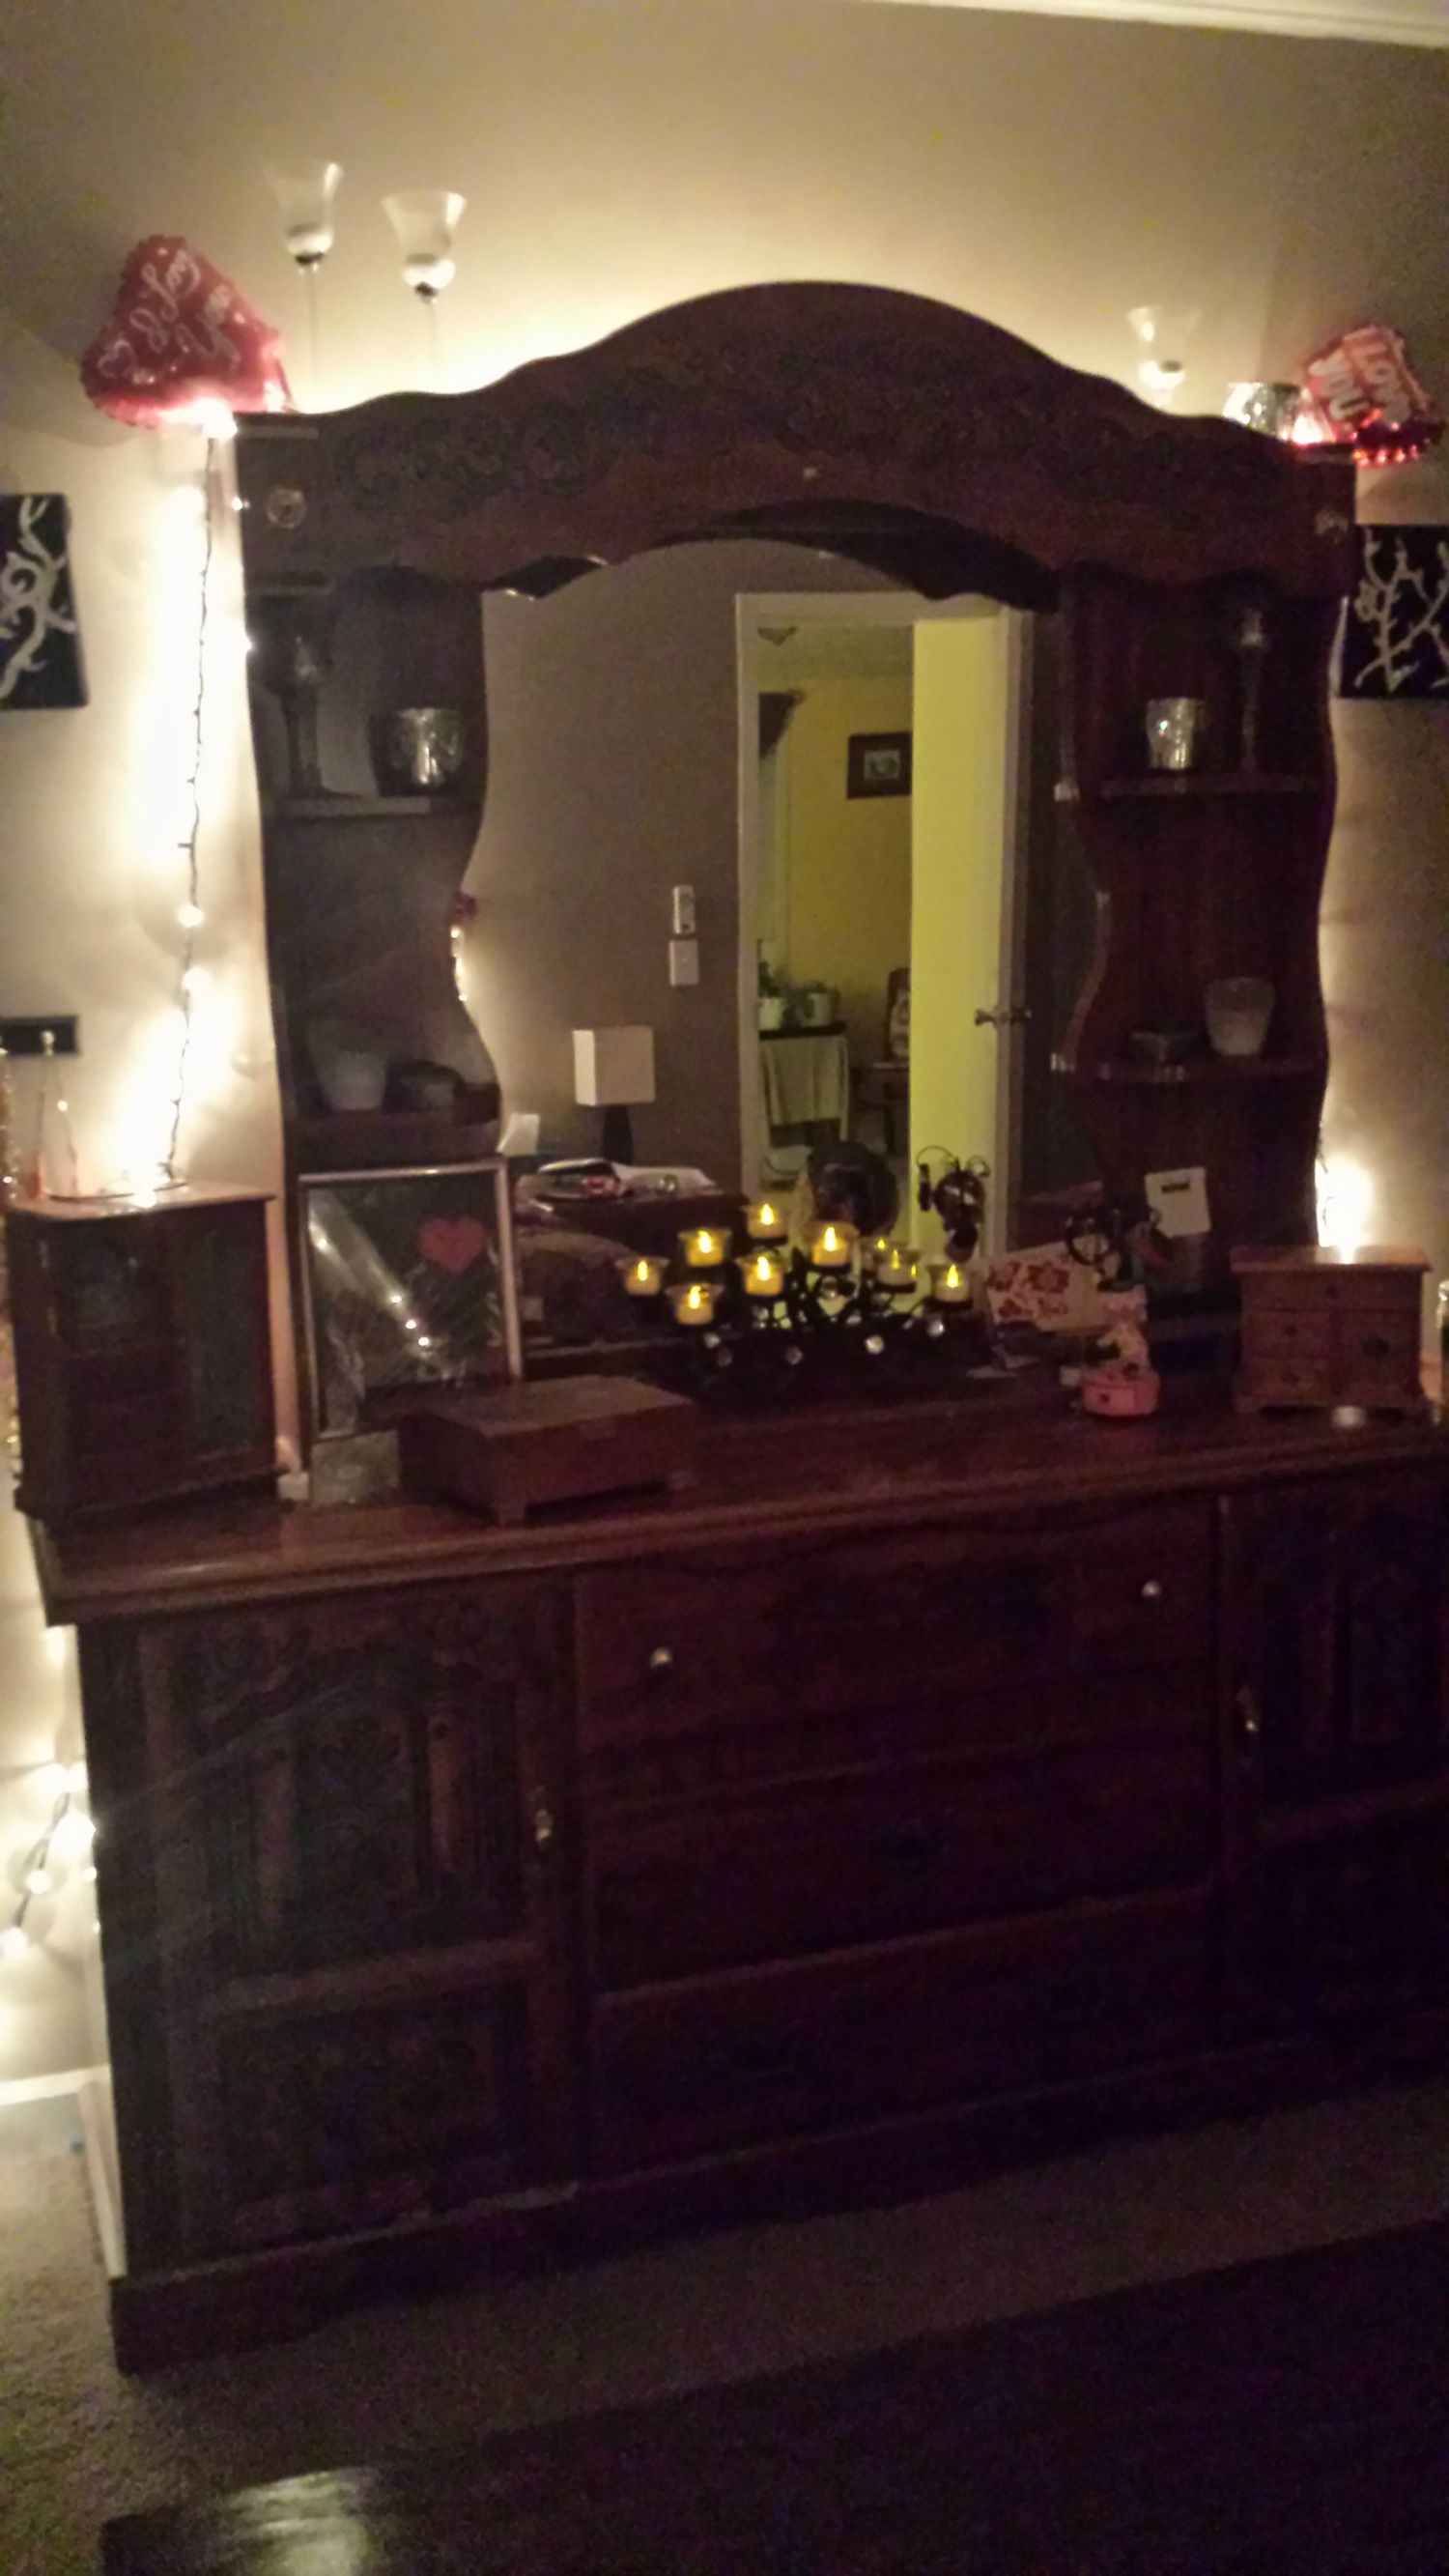 lights around the dresser